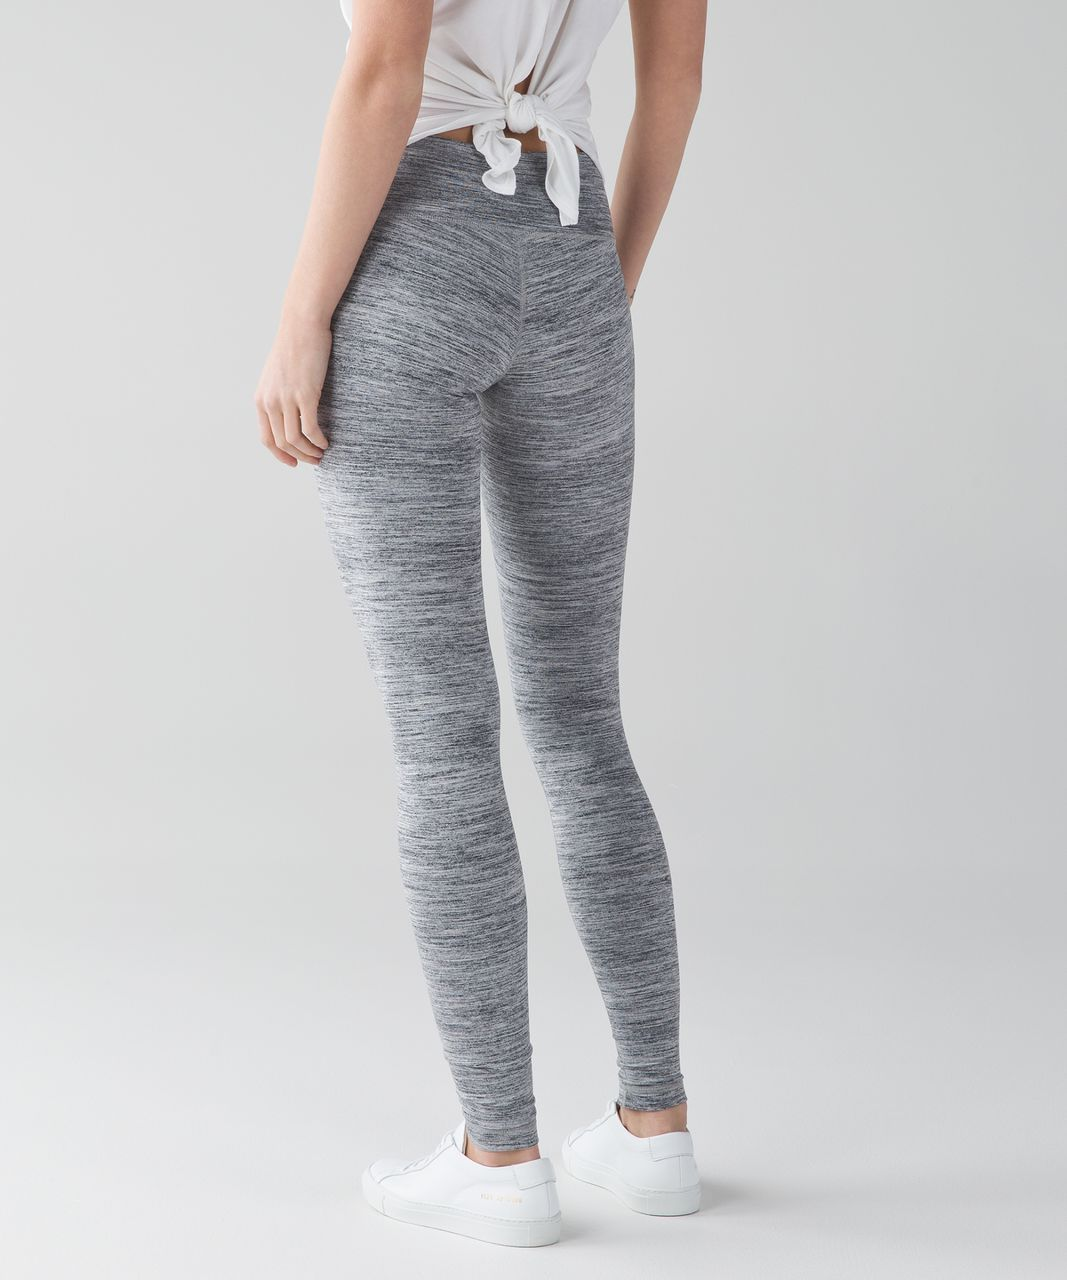 Lululemon Wunder Under Pant III - Space Dye Camo Seal Grey Deep Coal